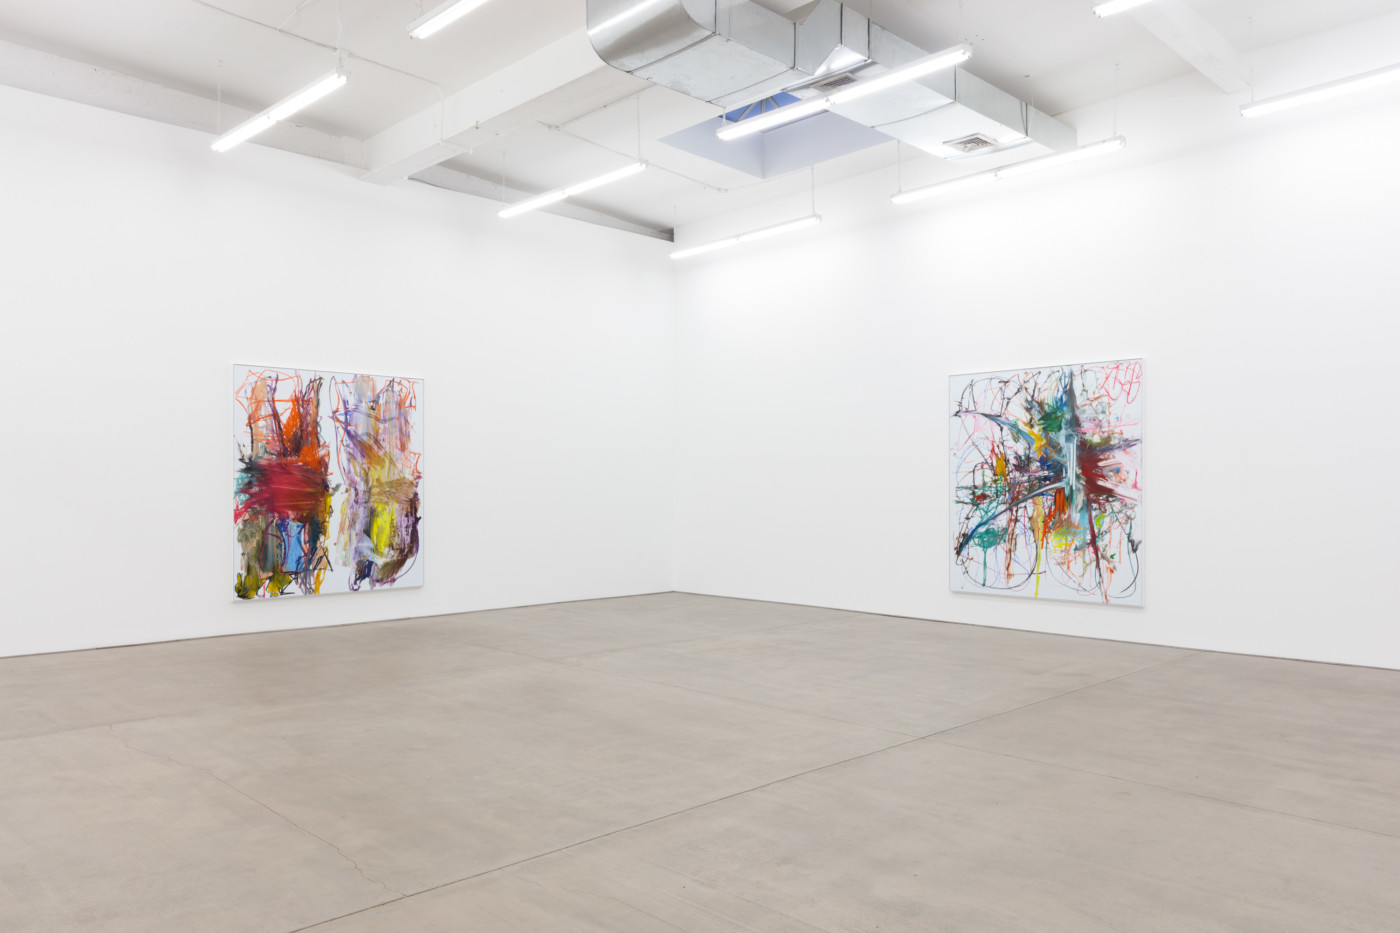 AARON  GARBER-MAIKOVSKA  postpartum , 2018, Clearing, New York,  installation view - High Art Gallery Paris